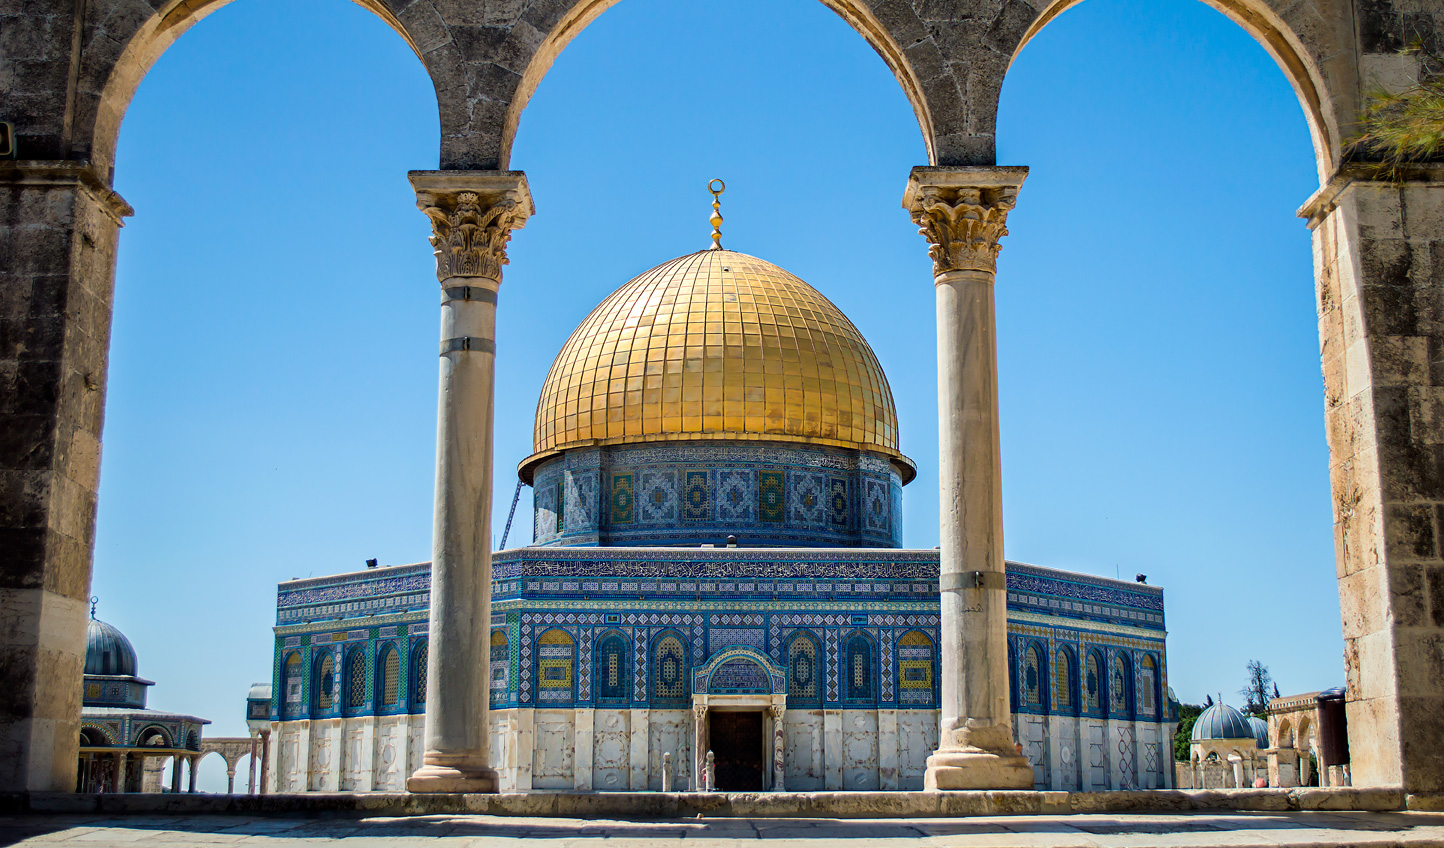 Venture into the Old City of Jerusalem on a private tour